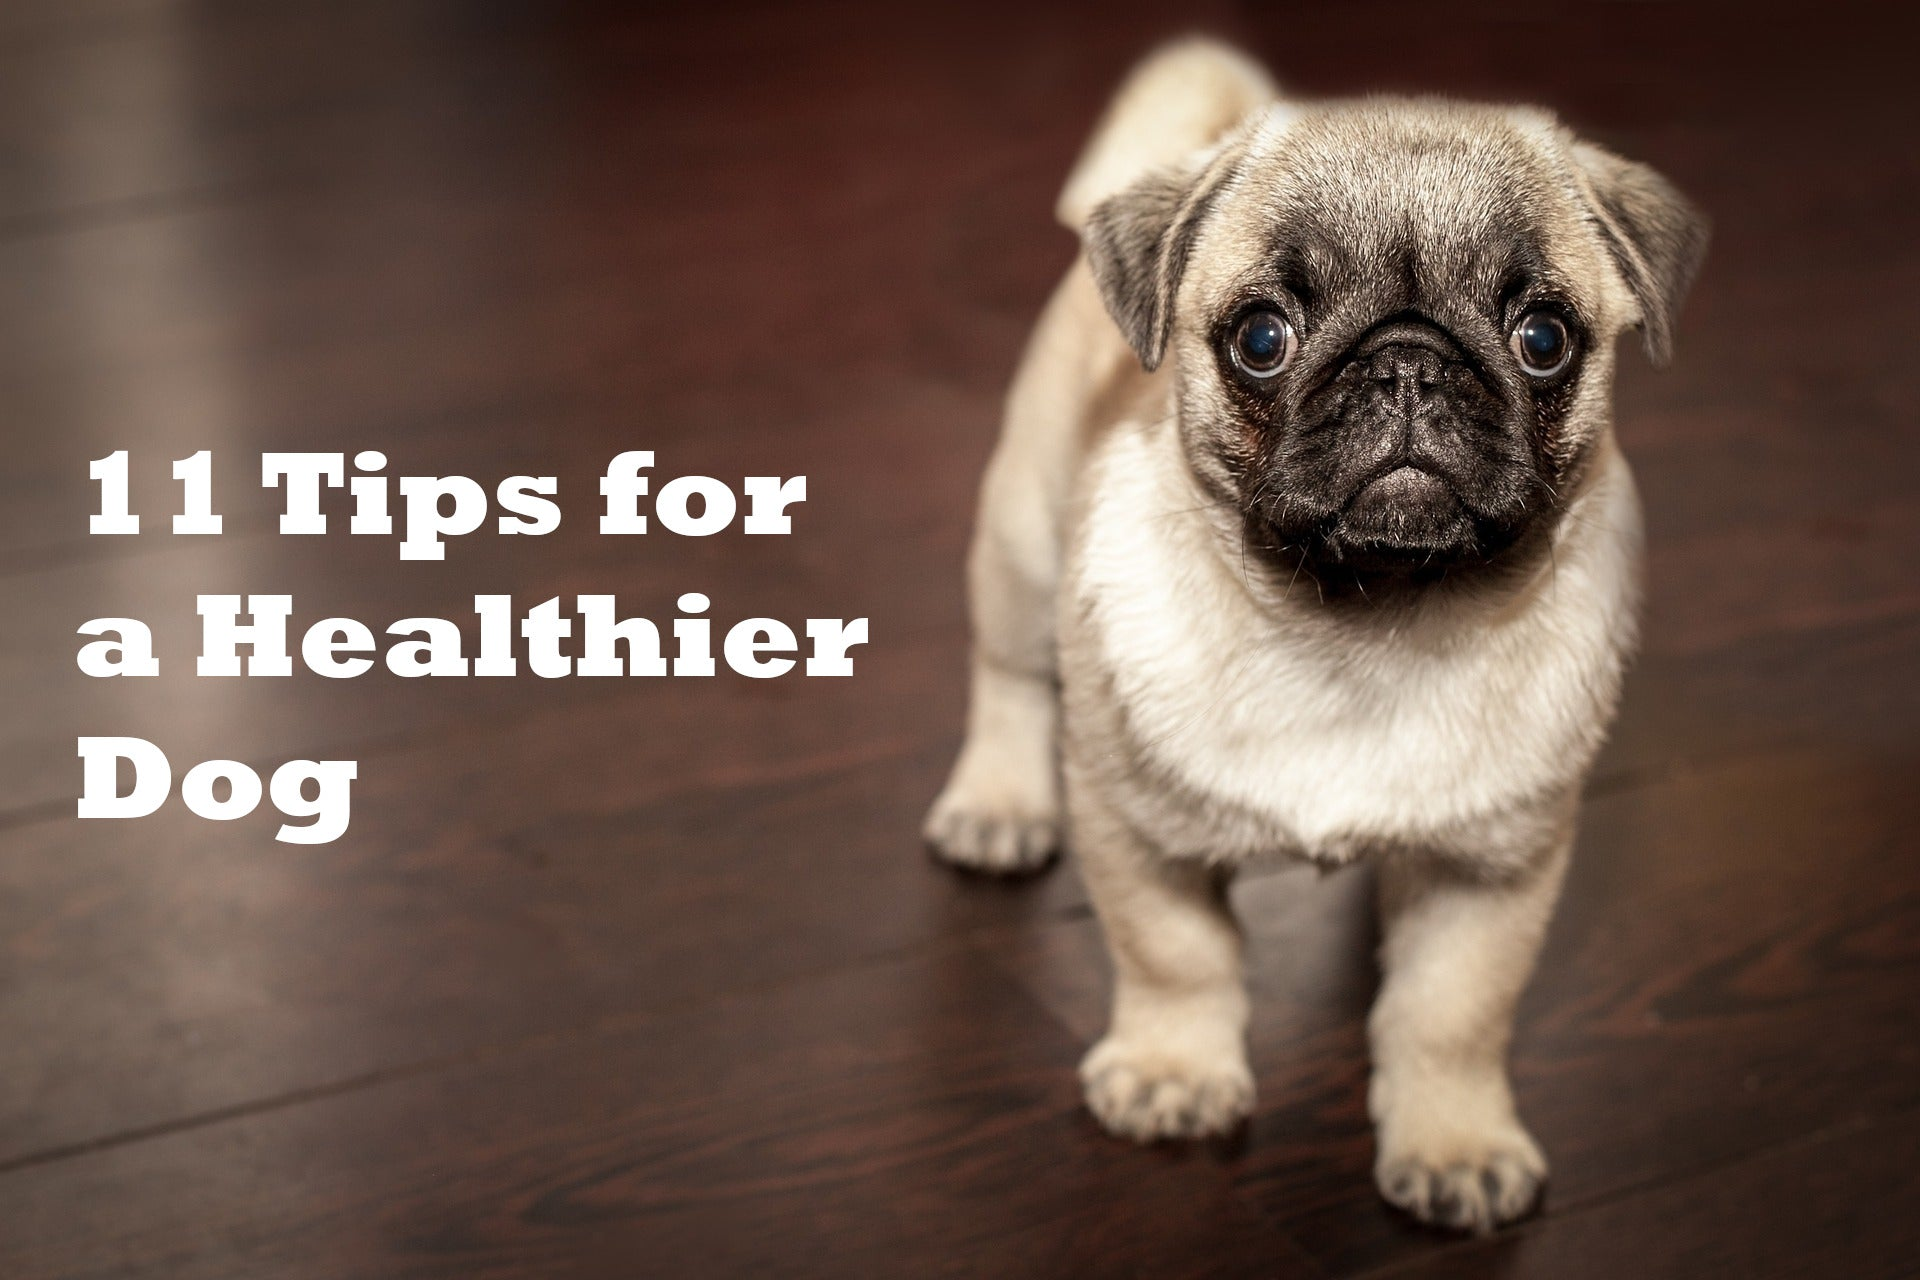 11 Tips for a Healthier Dog